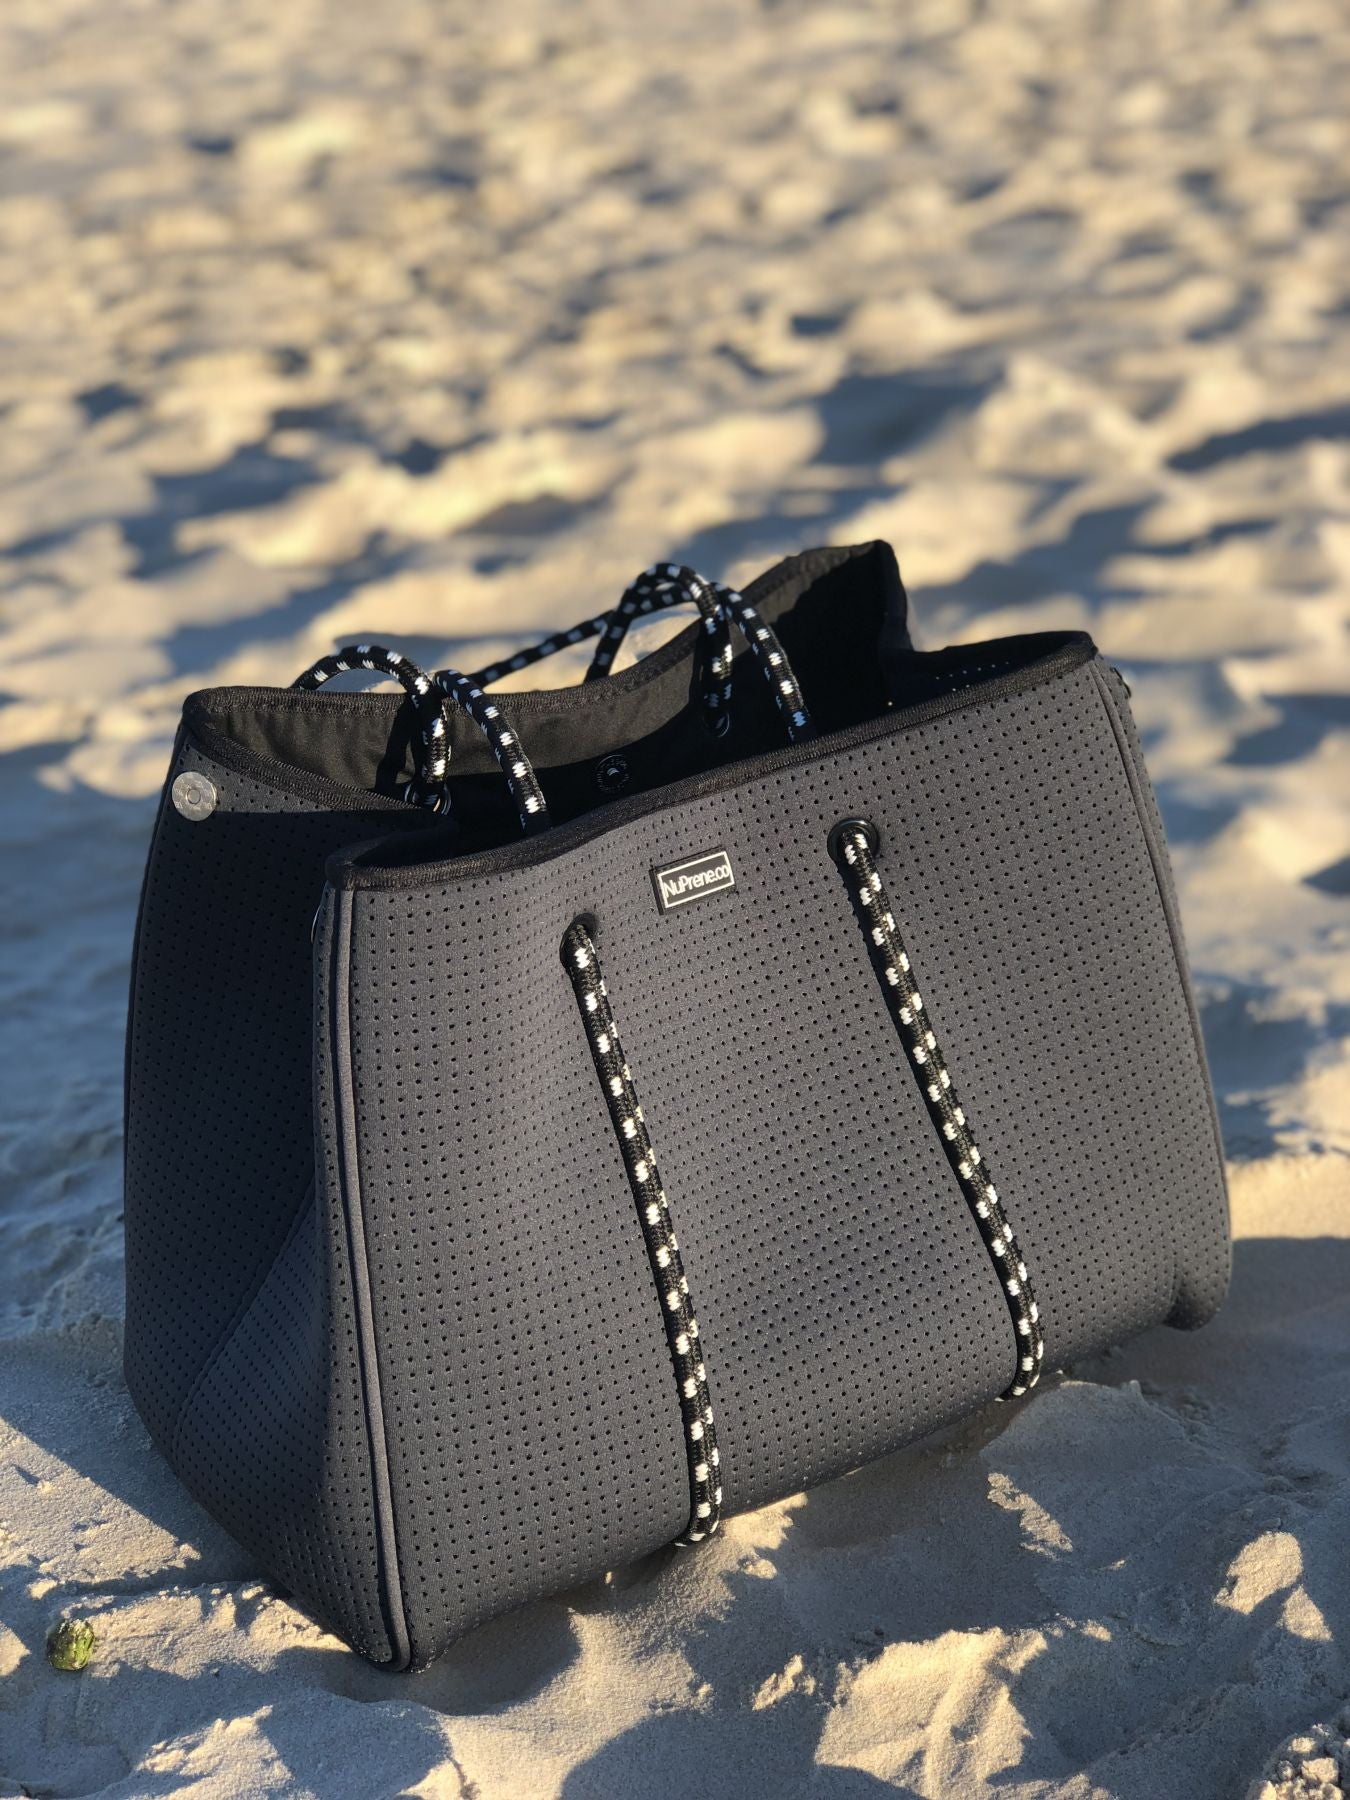 Neoprene Beach Bags Ideal for Active Lifestyle